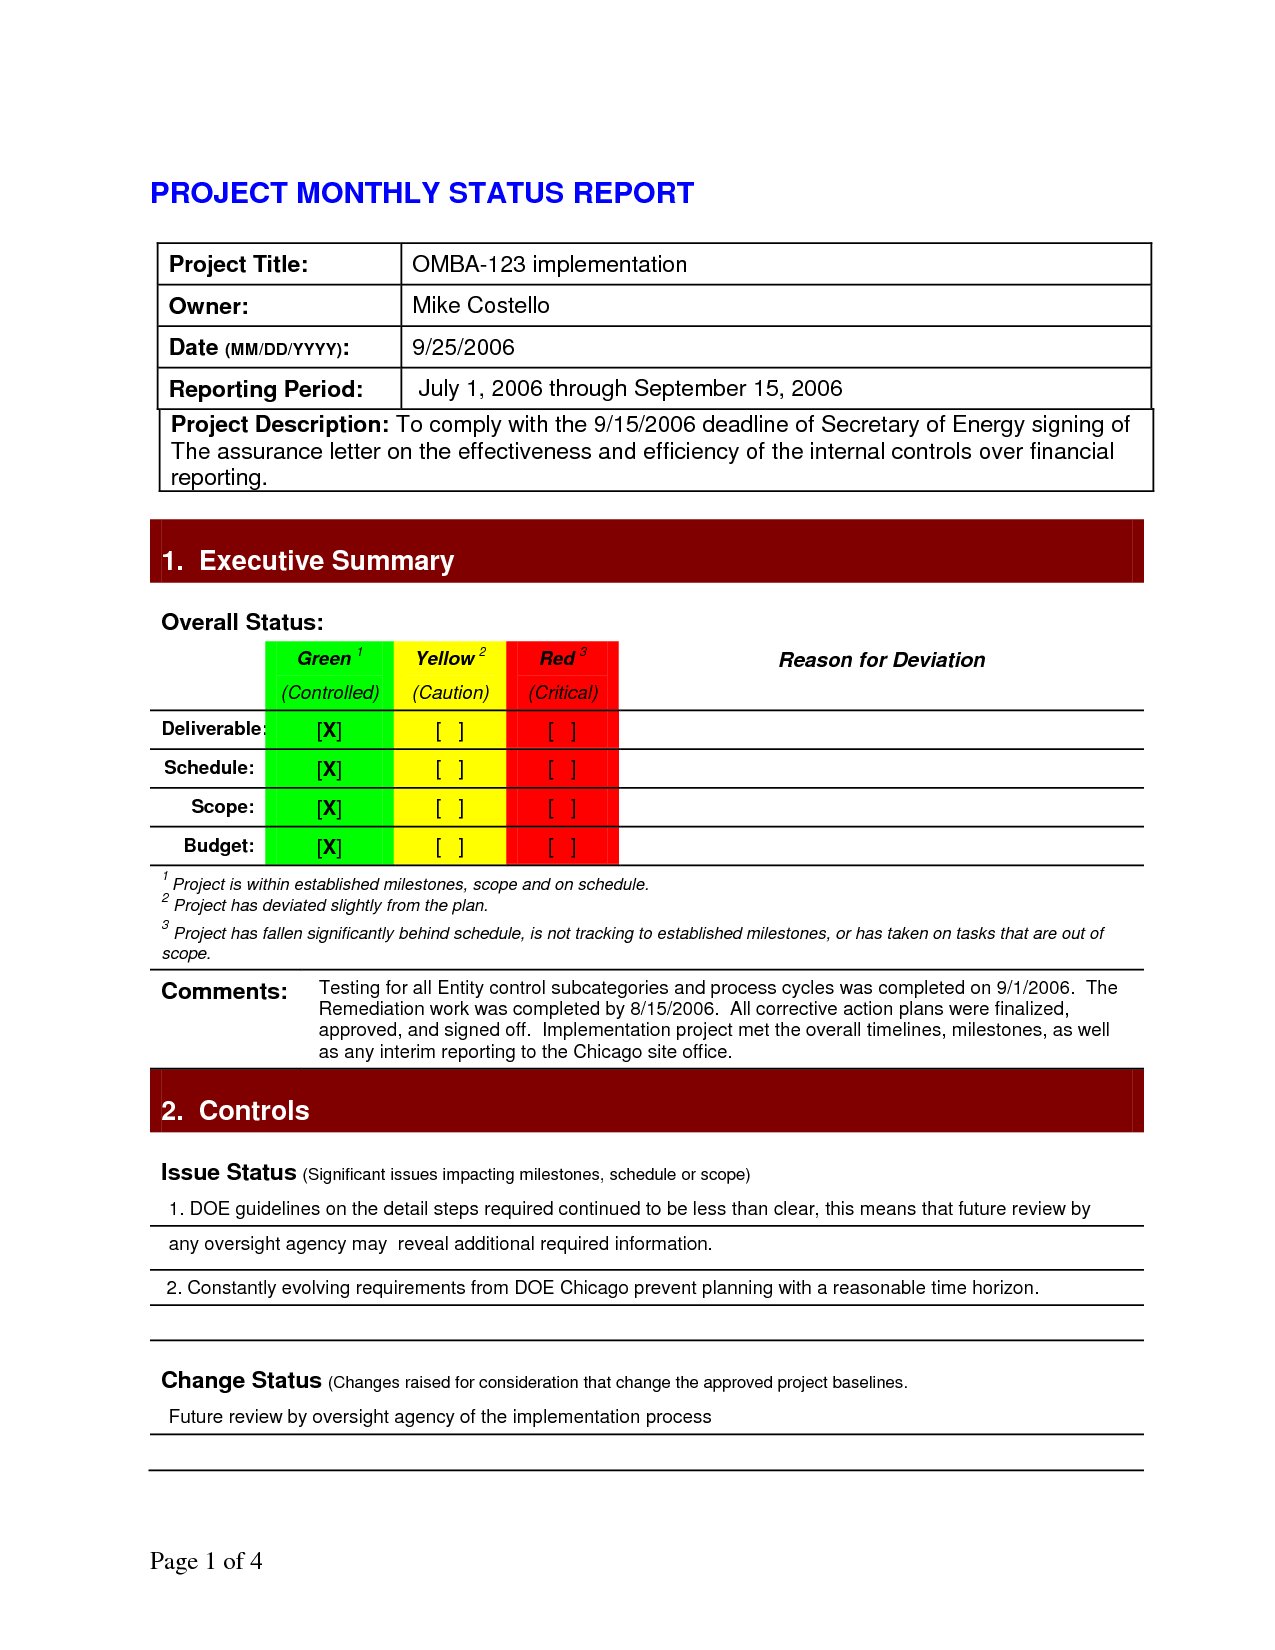 projectstatusreporttemplate2dfahbabpng 1275 1650 – Status Report Template